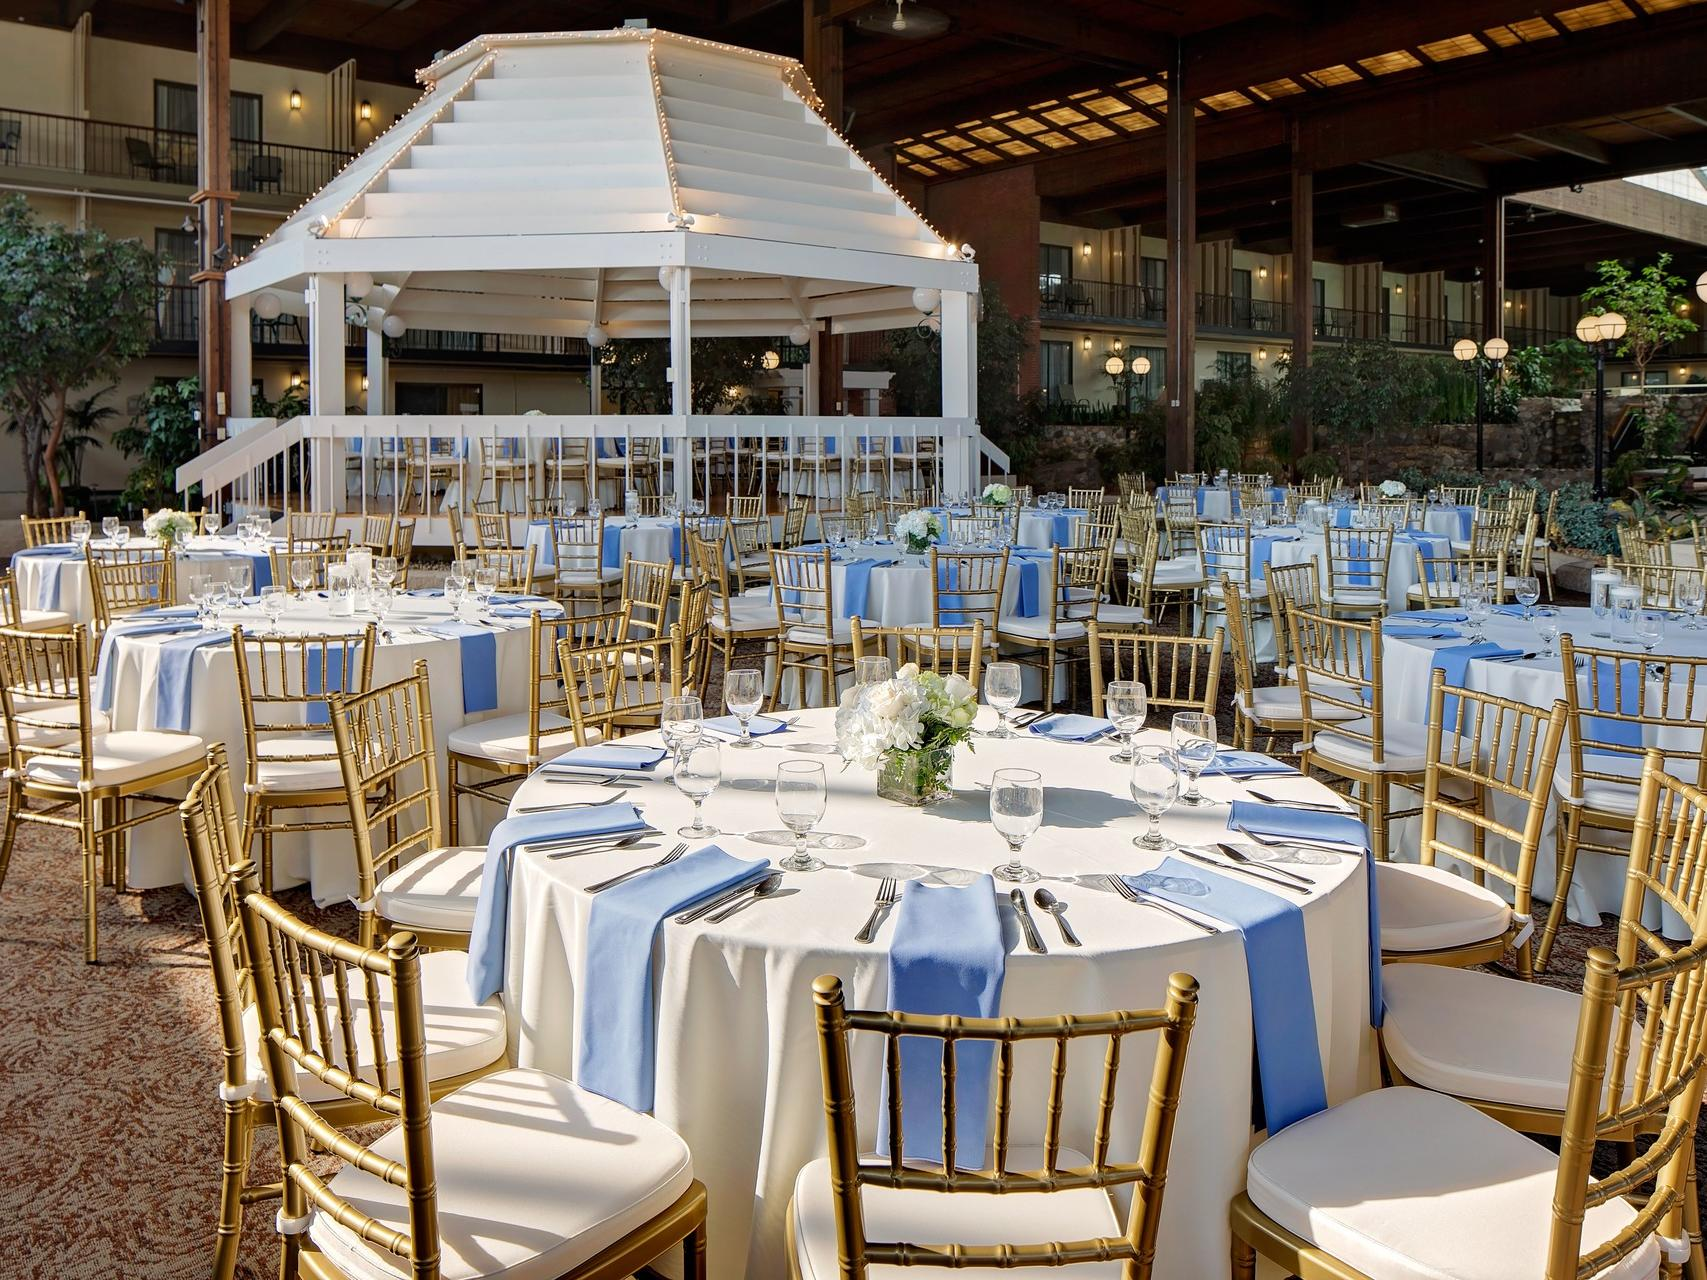 Wedding venue tables in atrium